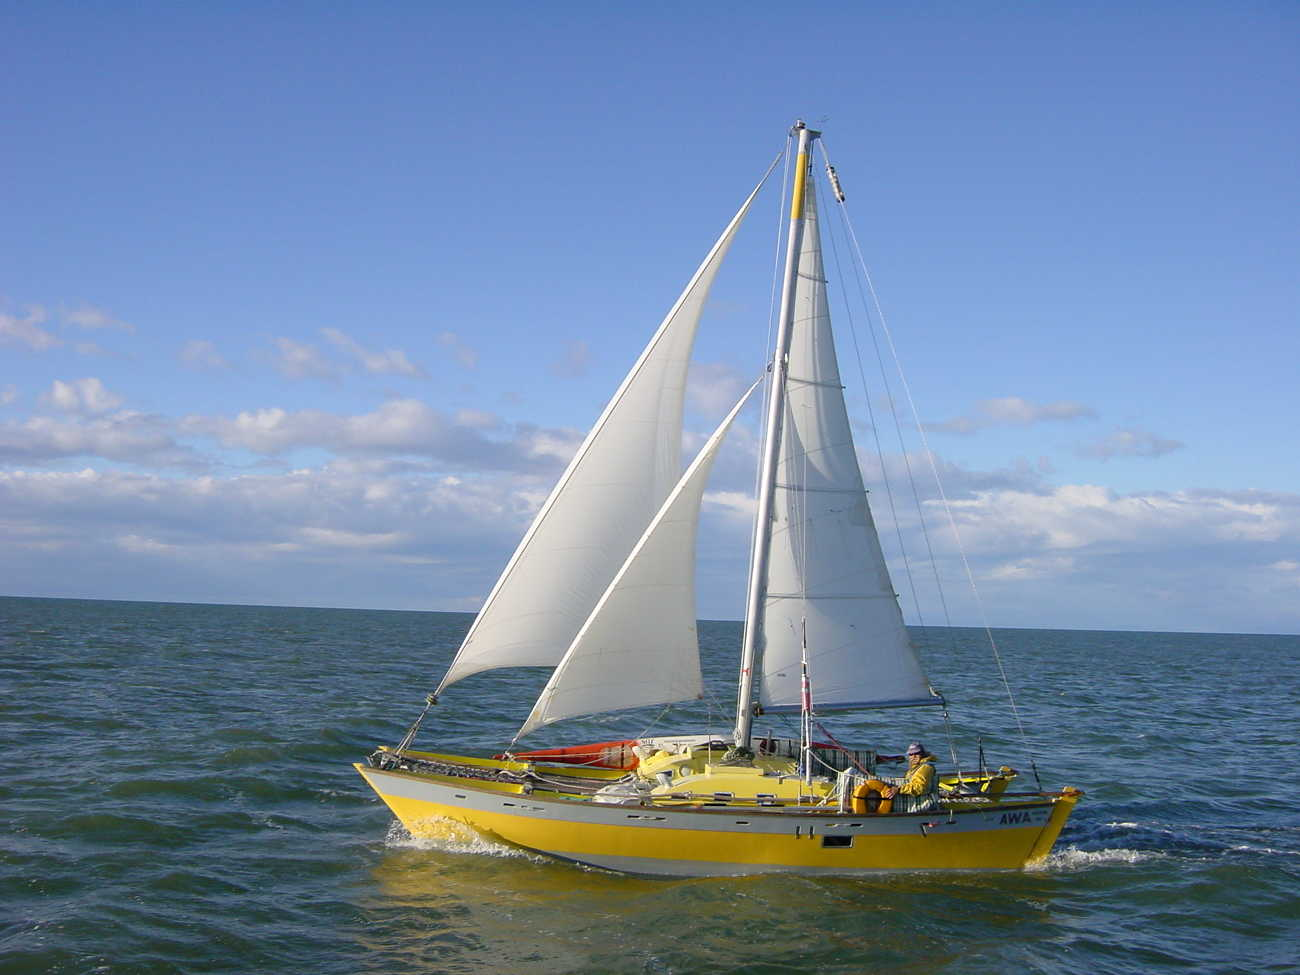 Yellow hulled Tanenui sailing out in the open, one man aboard